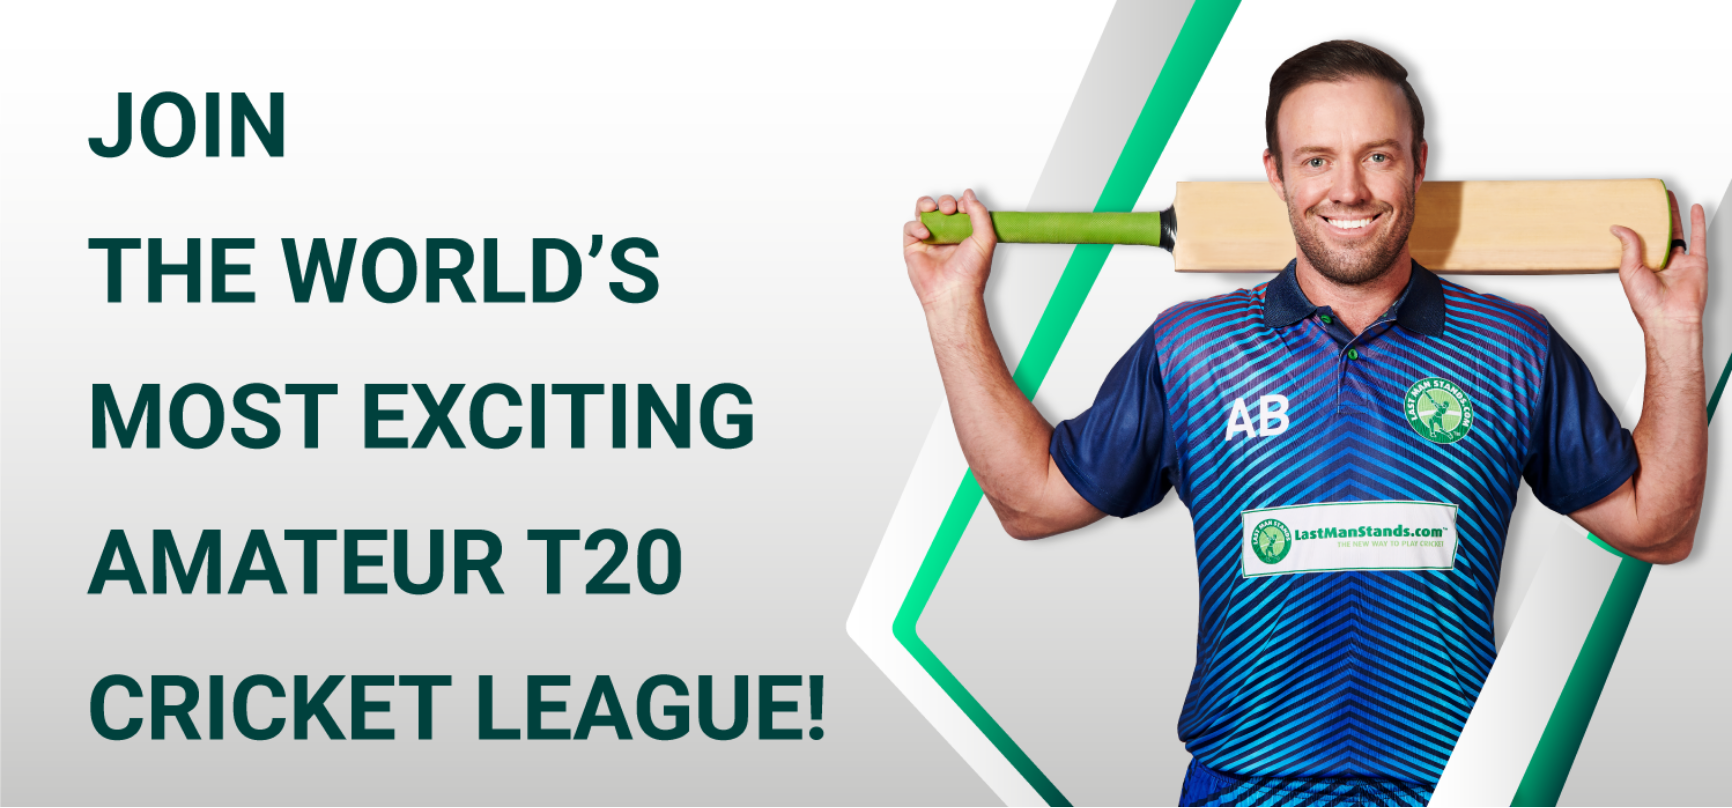 JOIN AB DE VILLIERS IN THE WORLD'S MOST EXCITING AMATEUR T20 CRICKET LEAGUE!